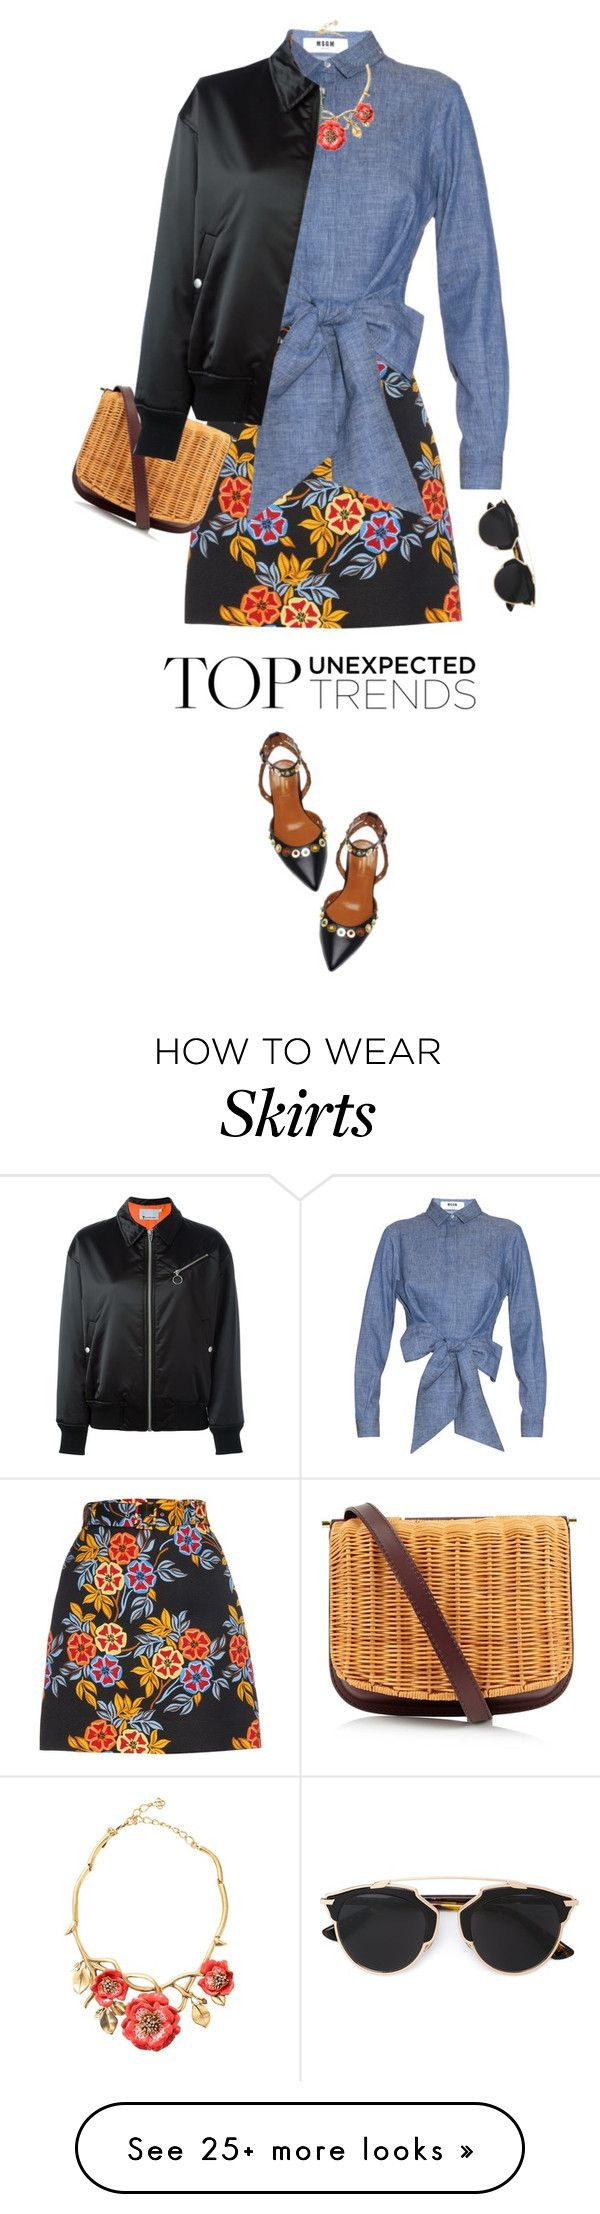 """T By Alexander Wang Classic Bomber Jacket"" by mychanel on Polyvore featuring MSGM, Aquazzura, Rachel Comey, Oscar de la Renta, Christian Dior and T By Alexander Wang"